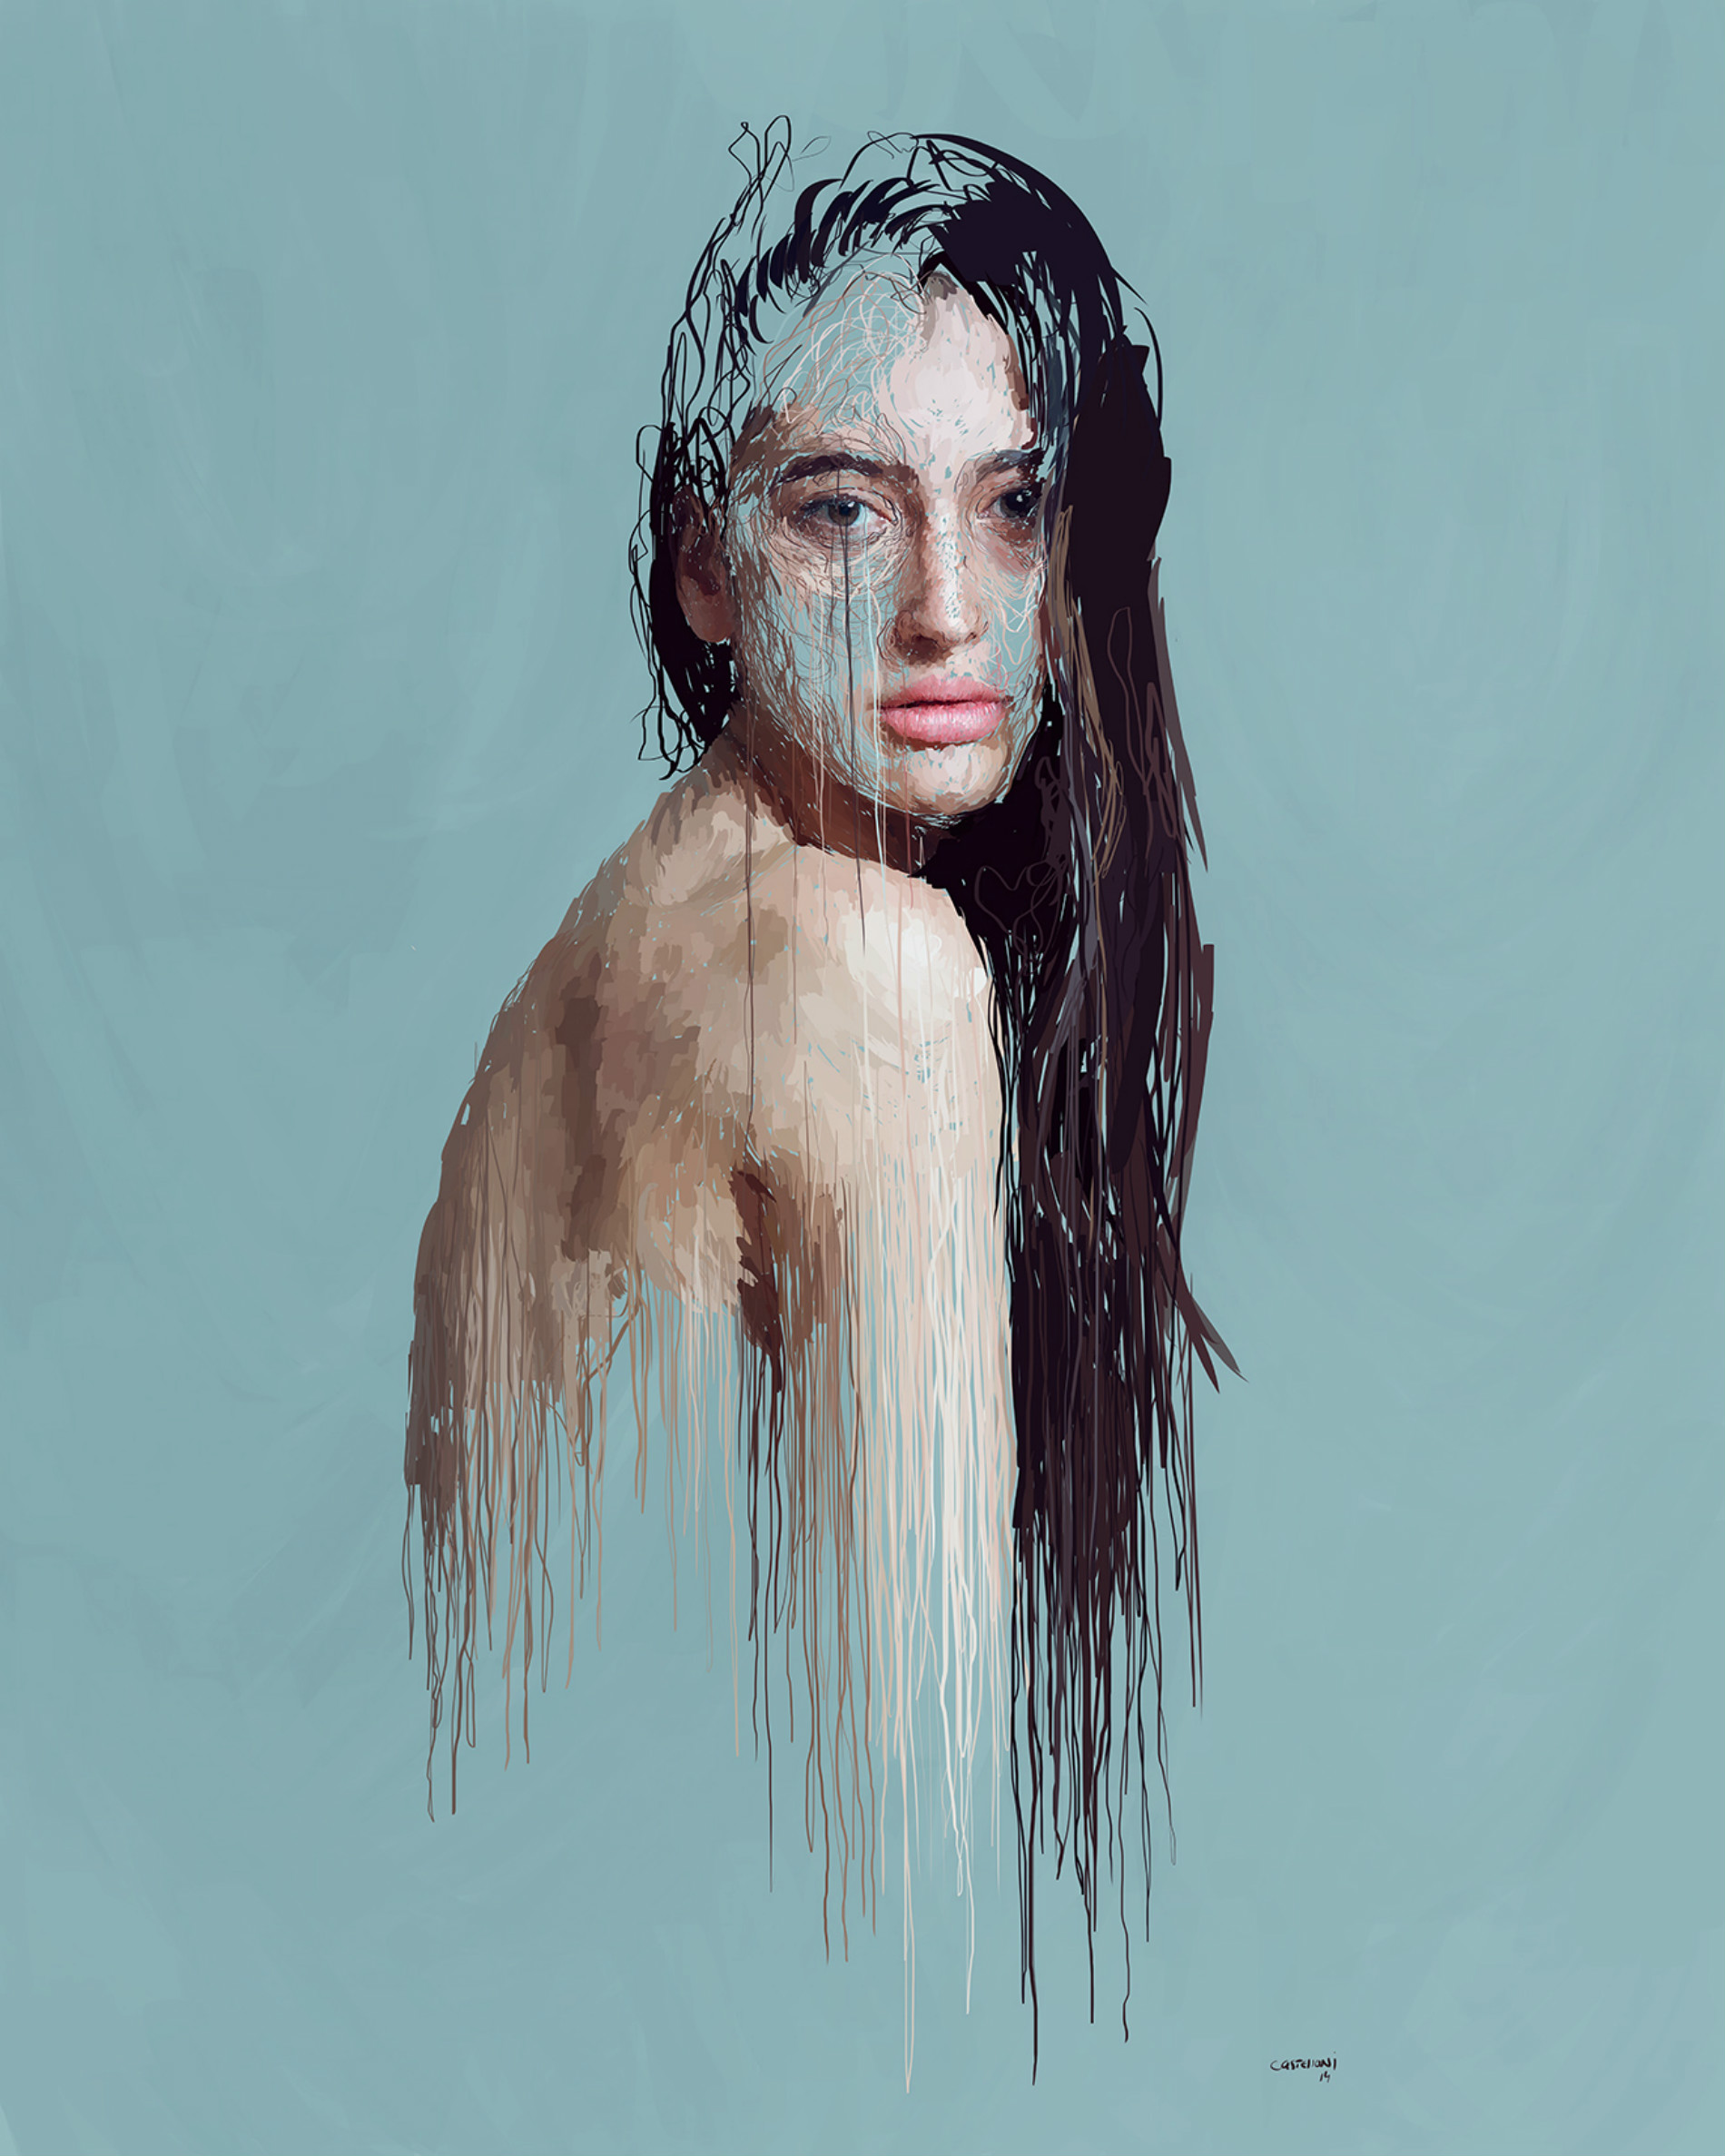 Drip-effect Portraits by Marcello Castellani